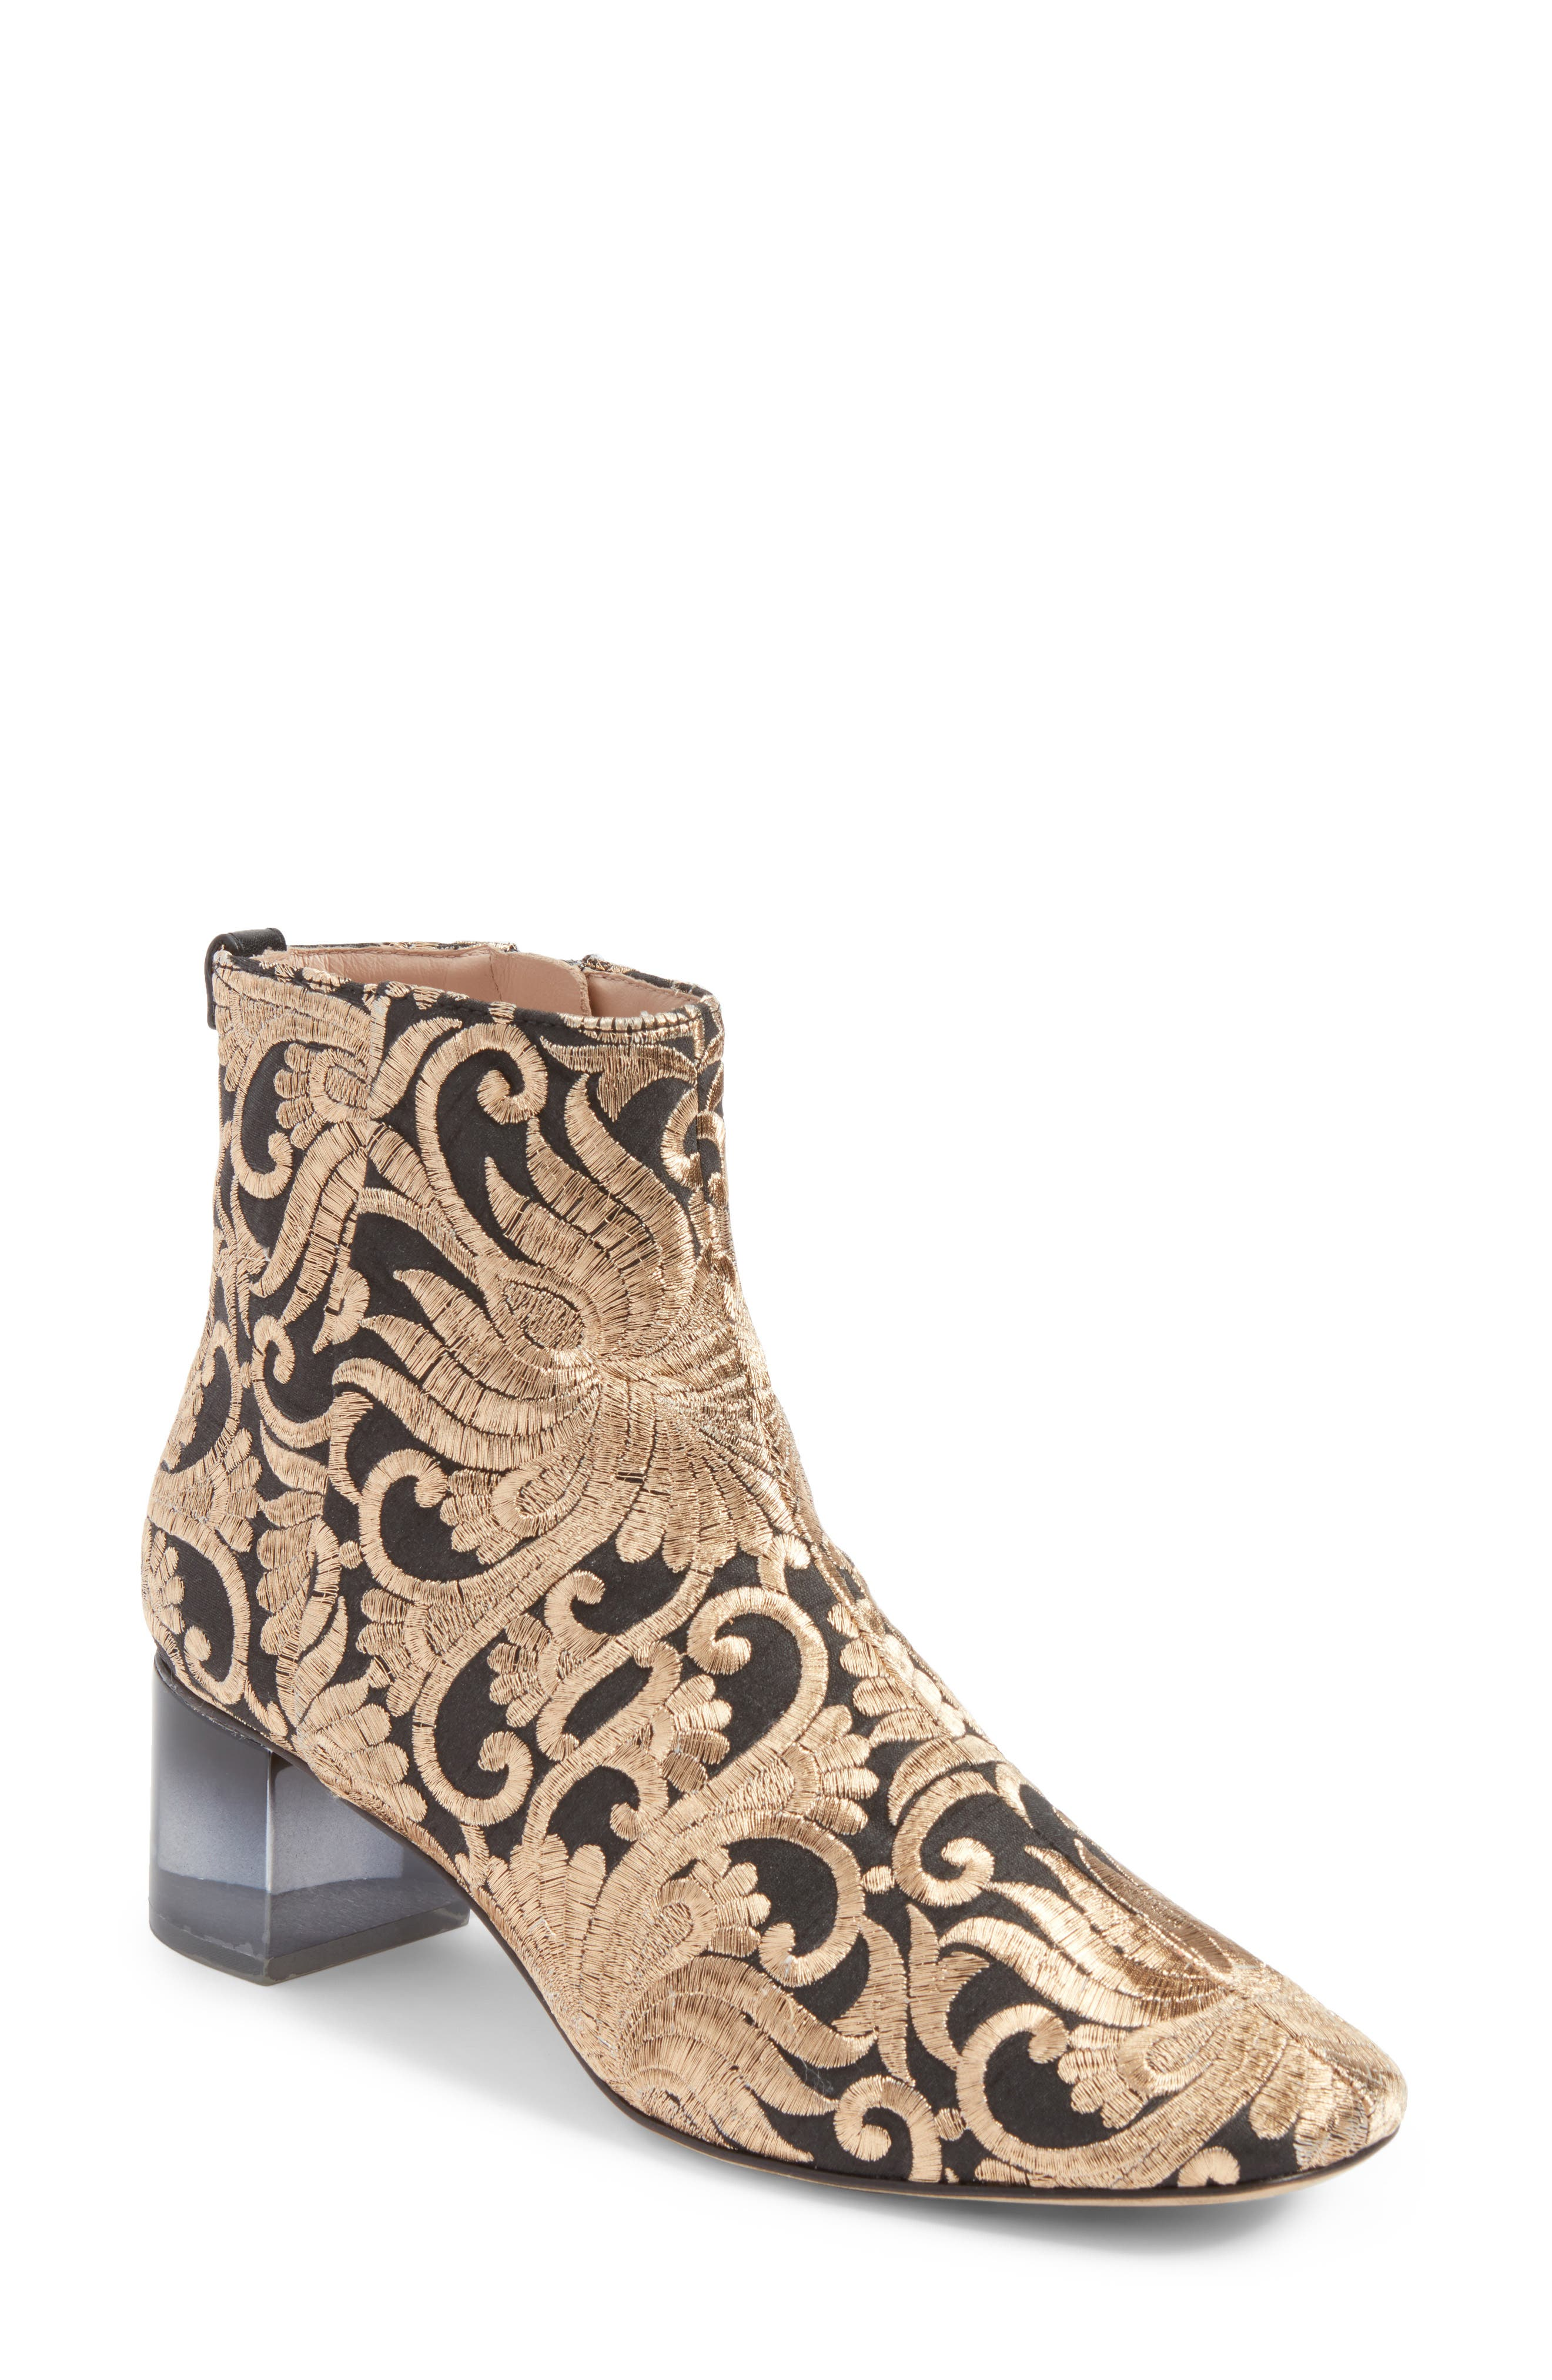 TORY BURCH Carlotta Embroidered Bootie